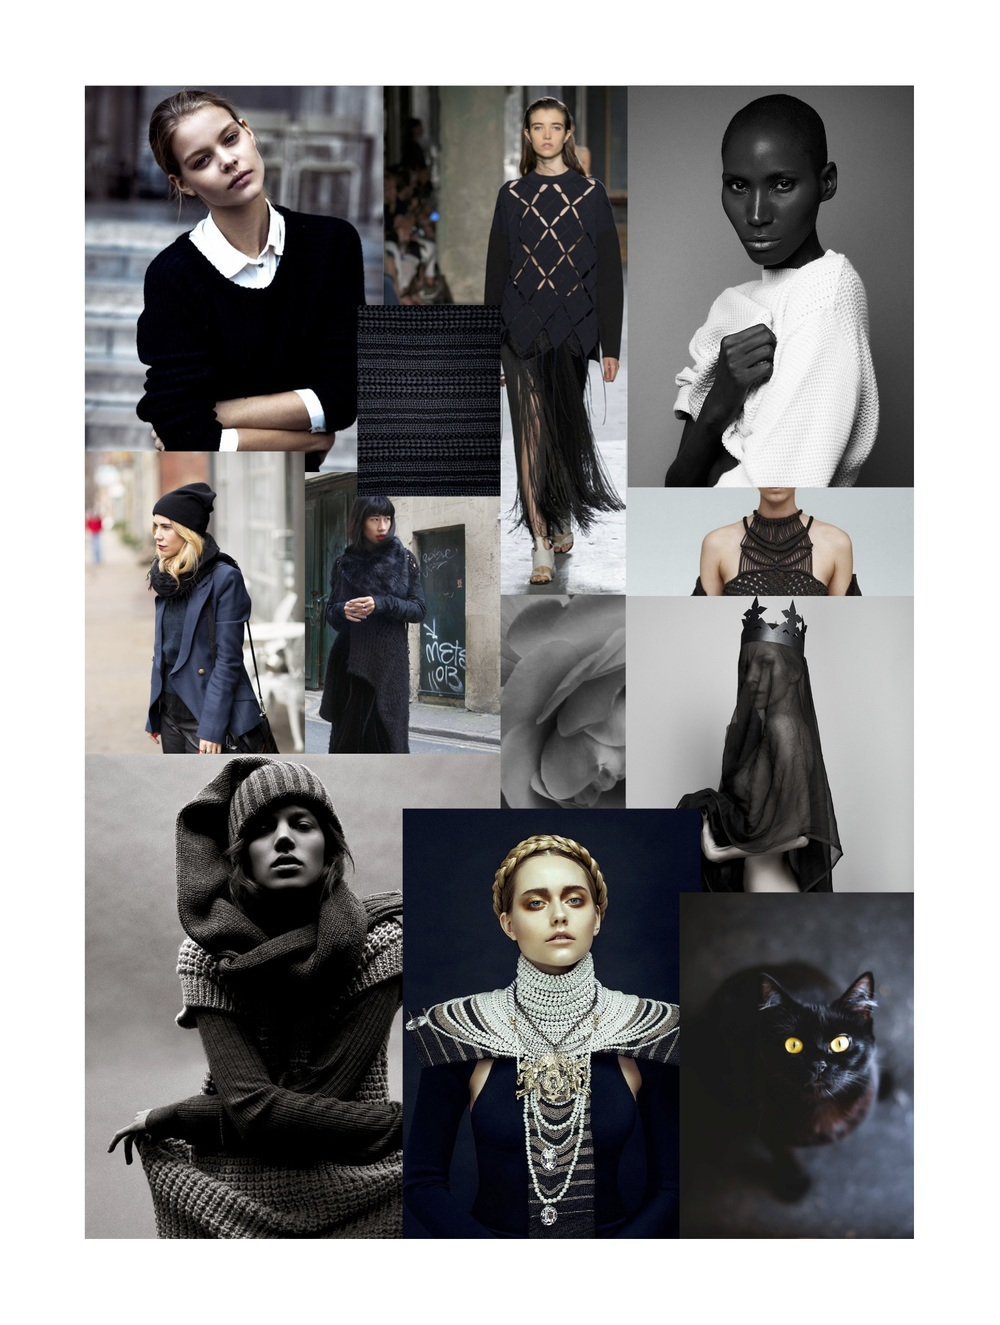 Our 'Dark Shadows' knitspiration board featuring tones of black. All images from Pinterest and Tumblr.